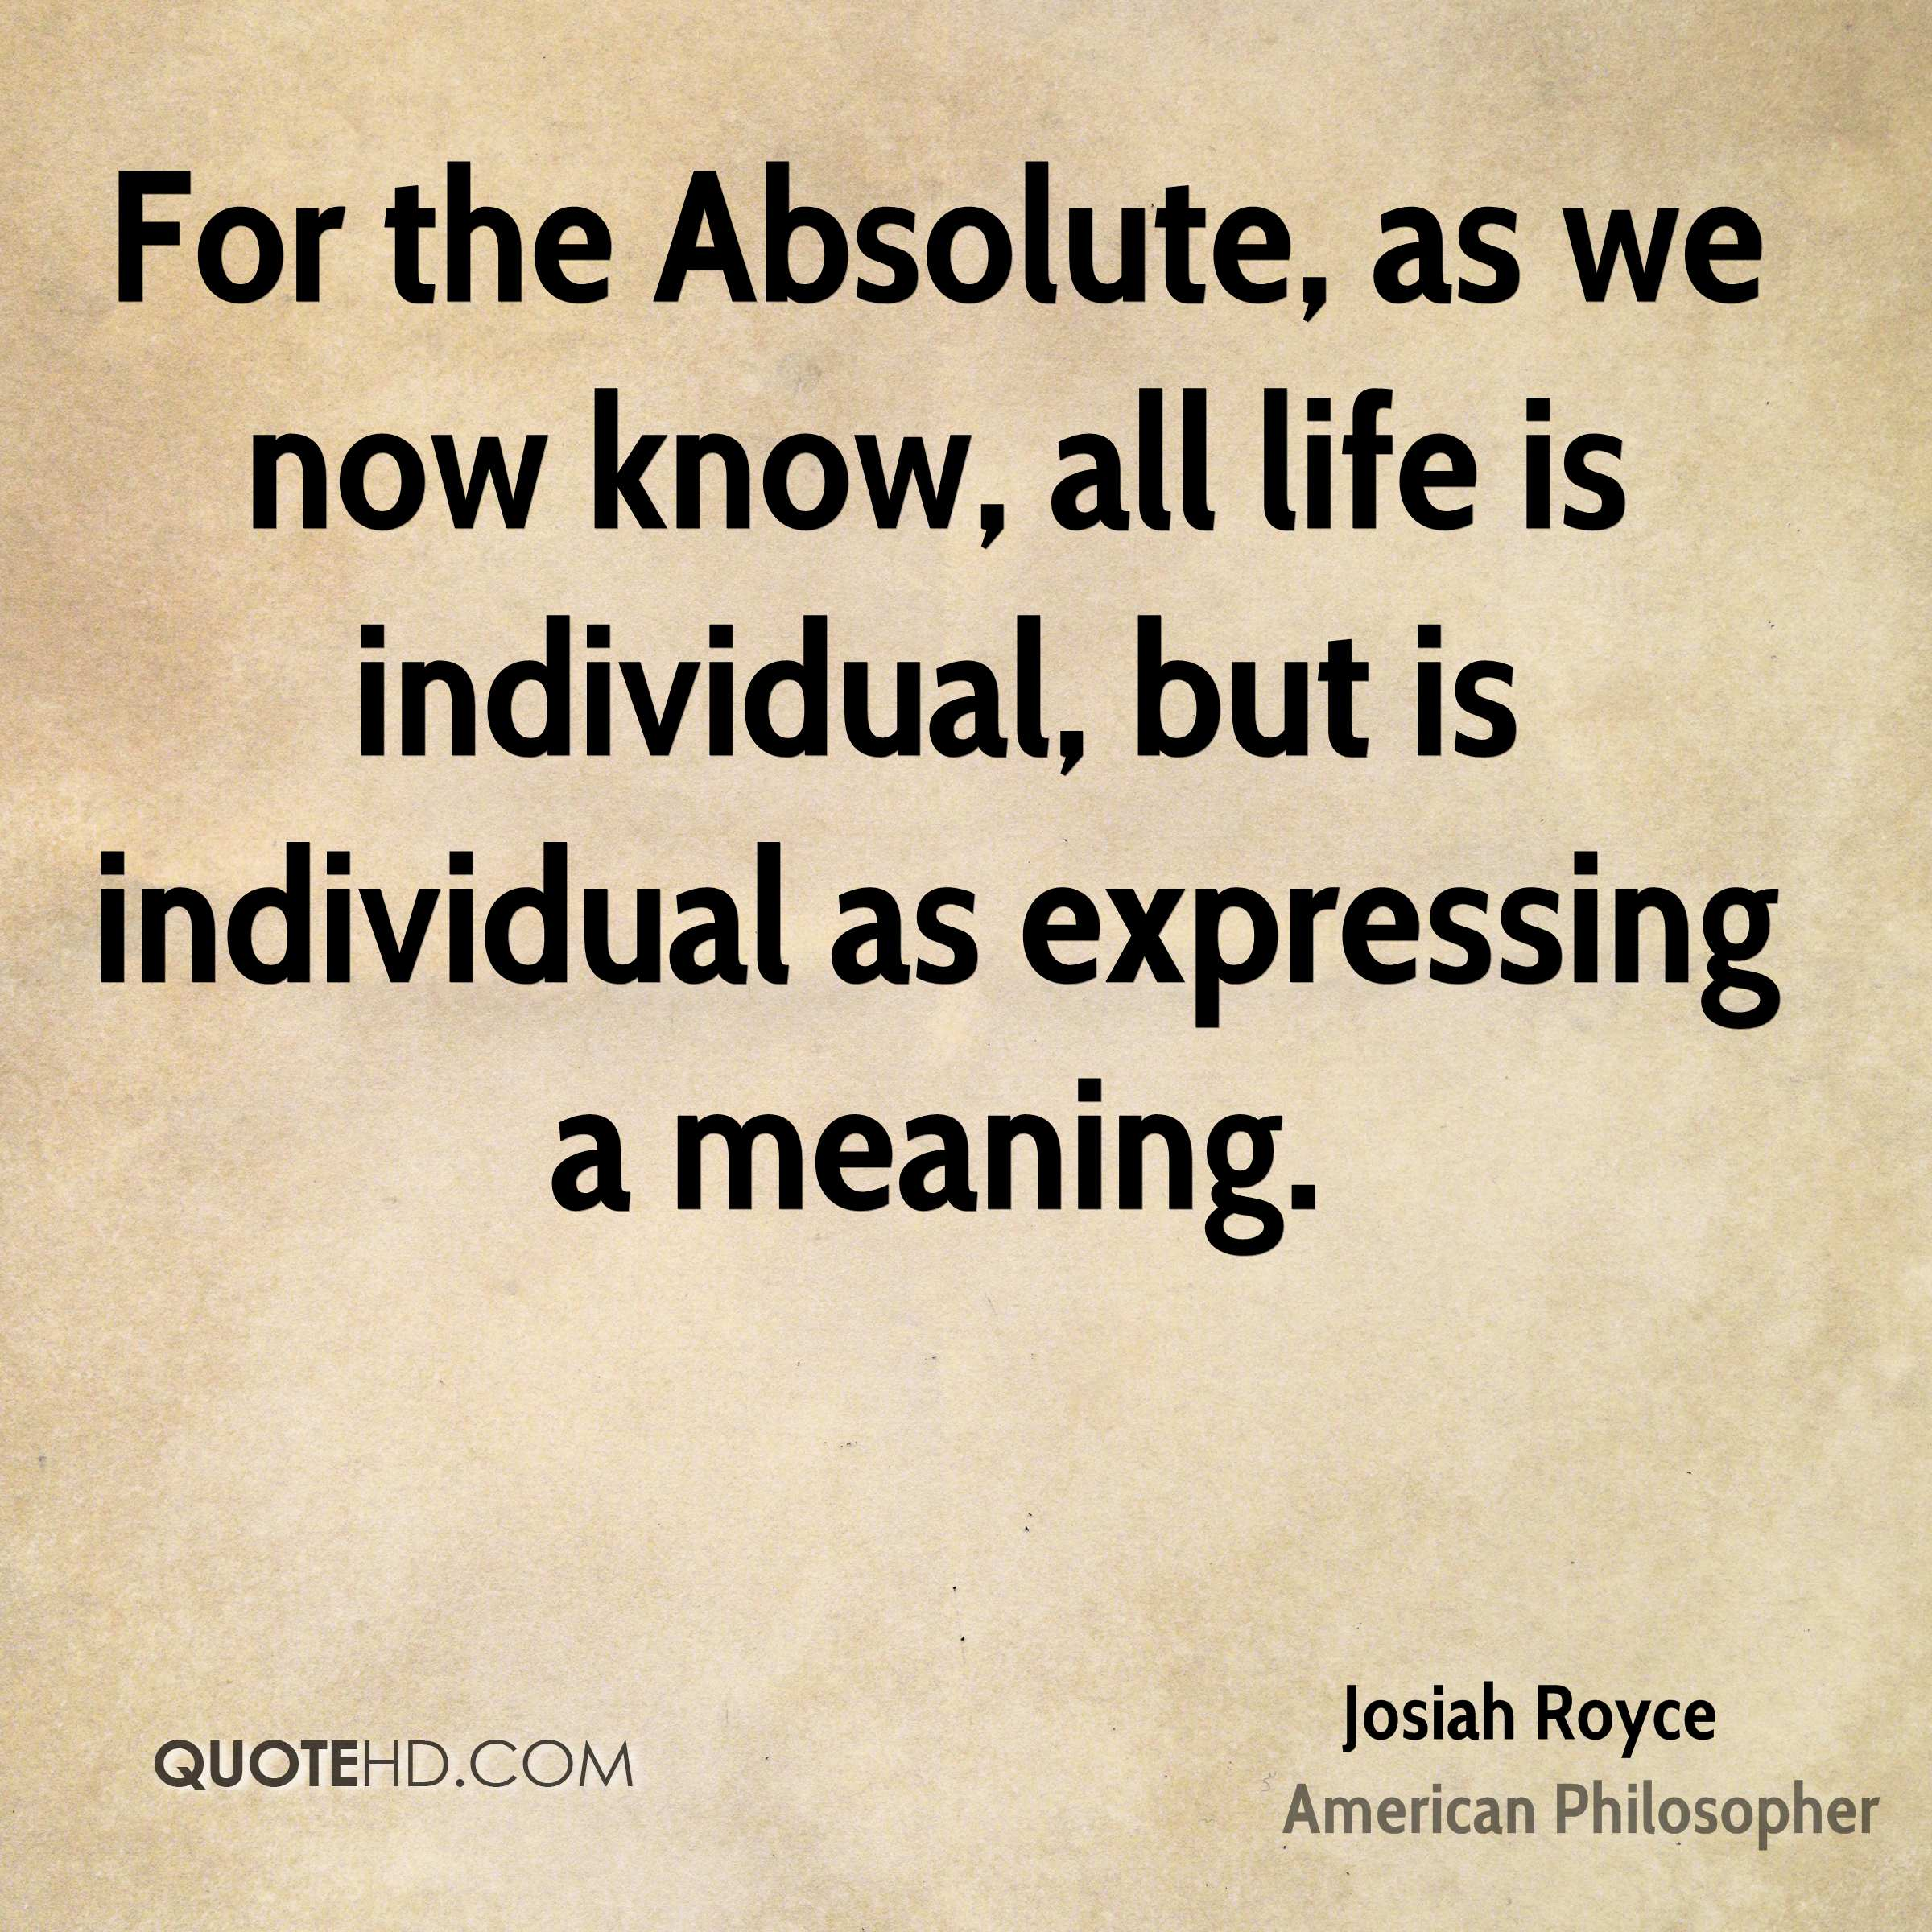 Philosophers Quotes On The Meaning Of Life Josiah Royce Quotes  Quotehd